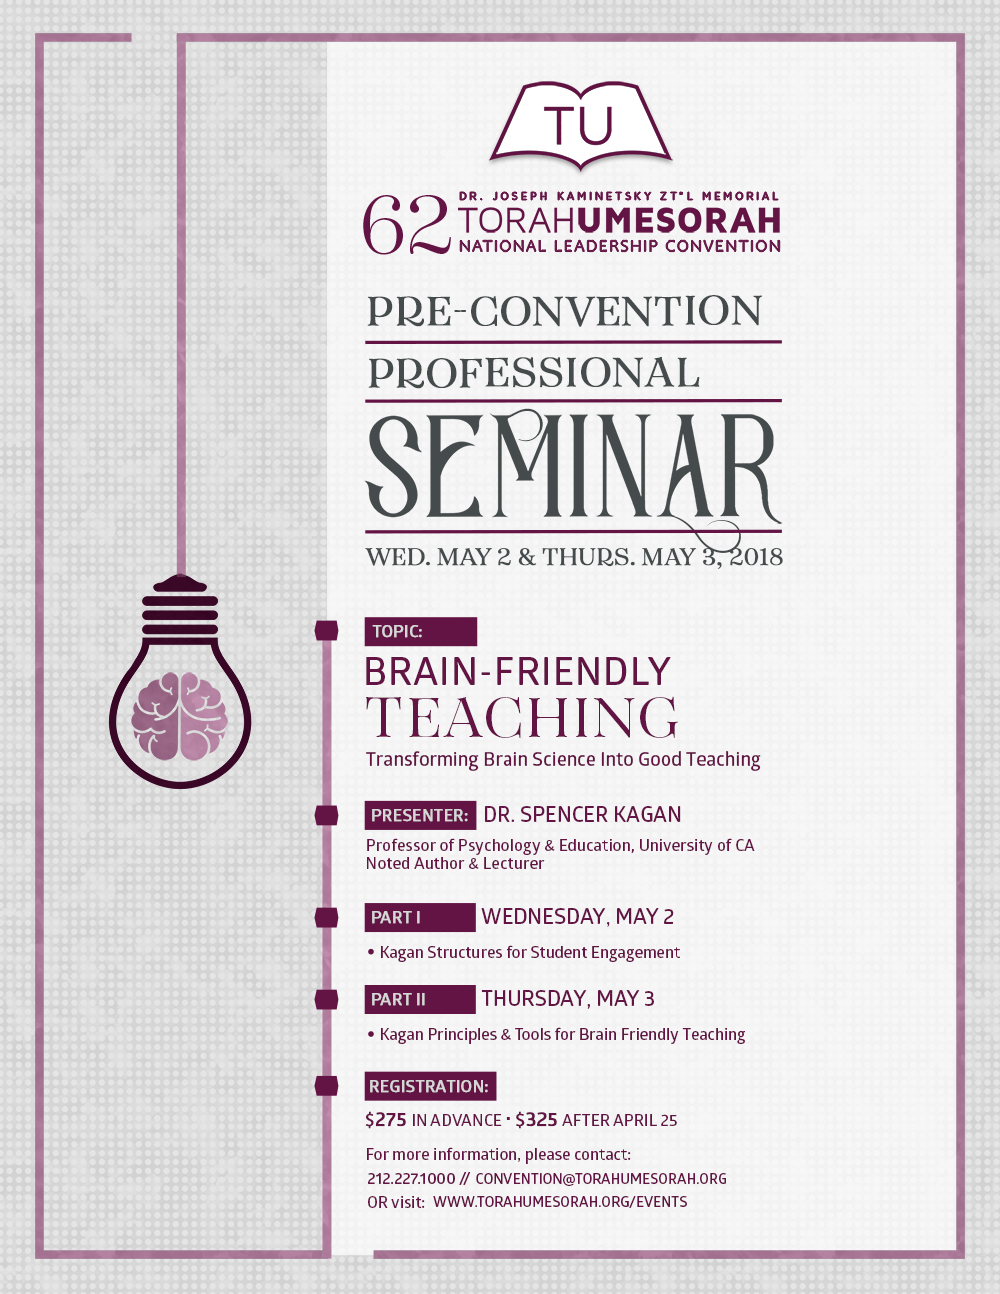 Pre-Convention Professional Seminar